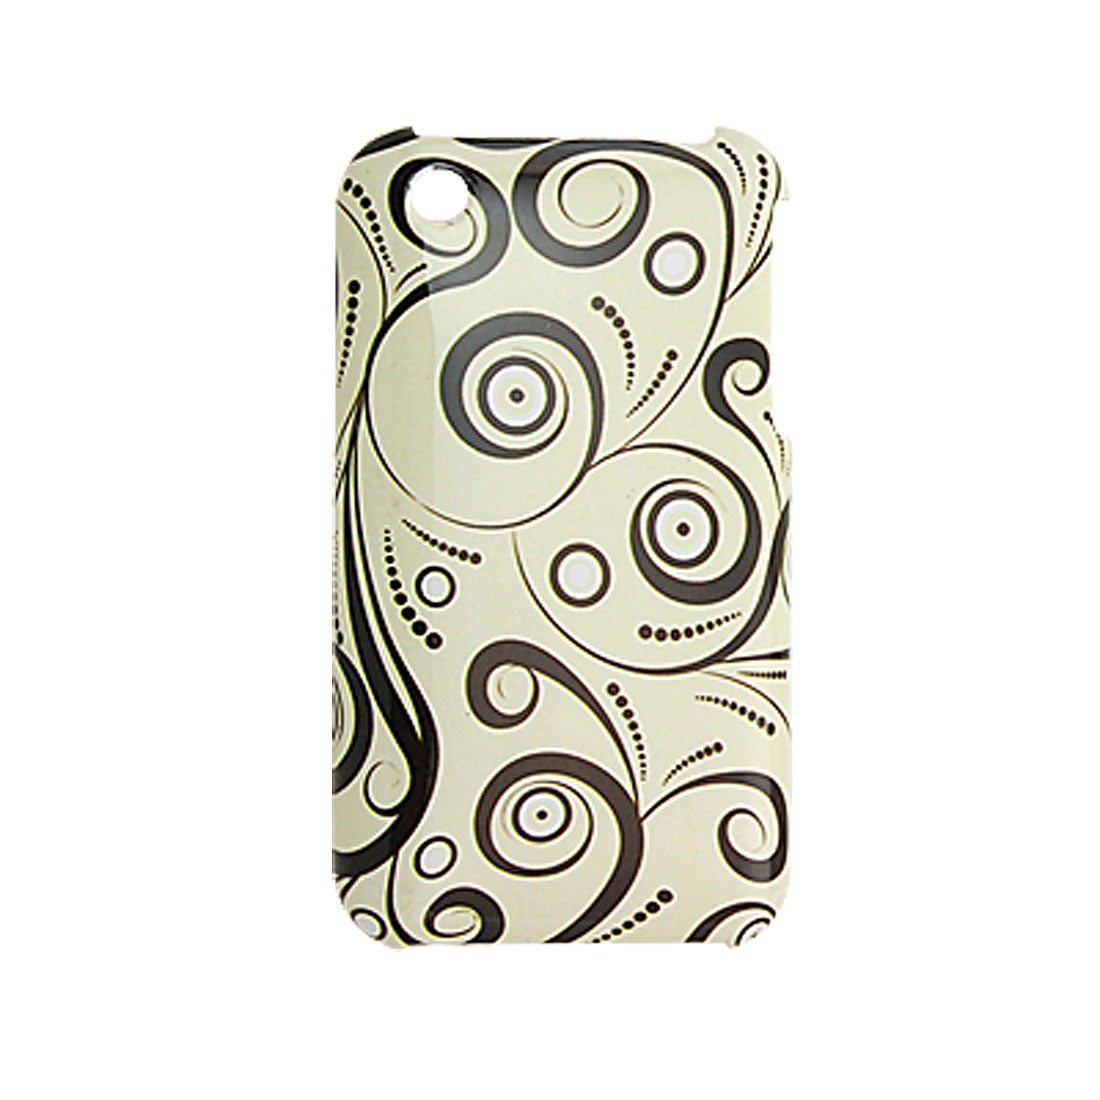 Flower Plastic Back Case Shell Screen Guard for iPhone 3G